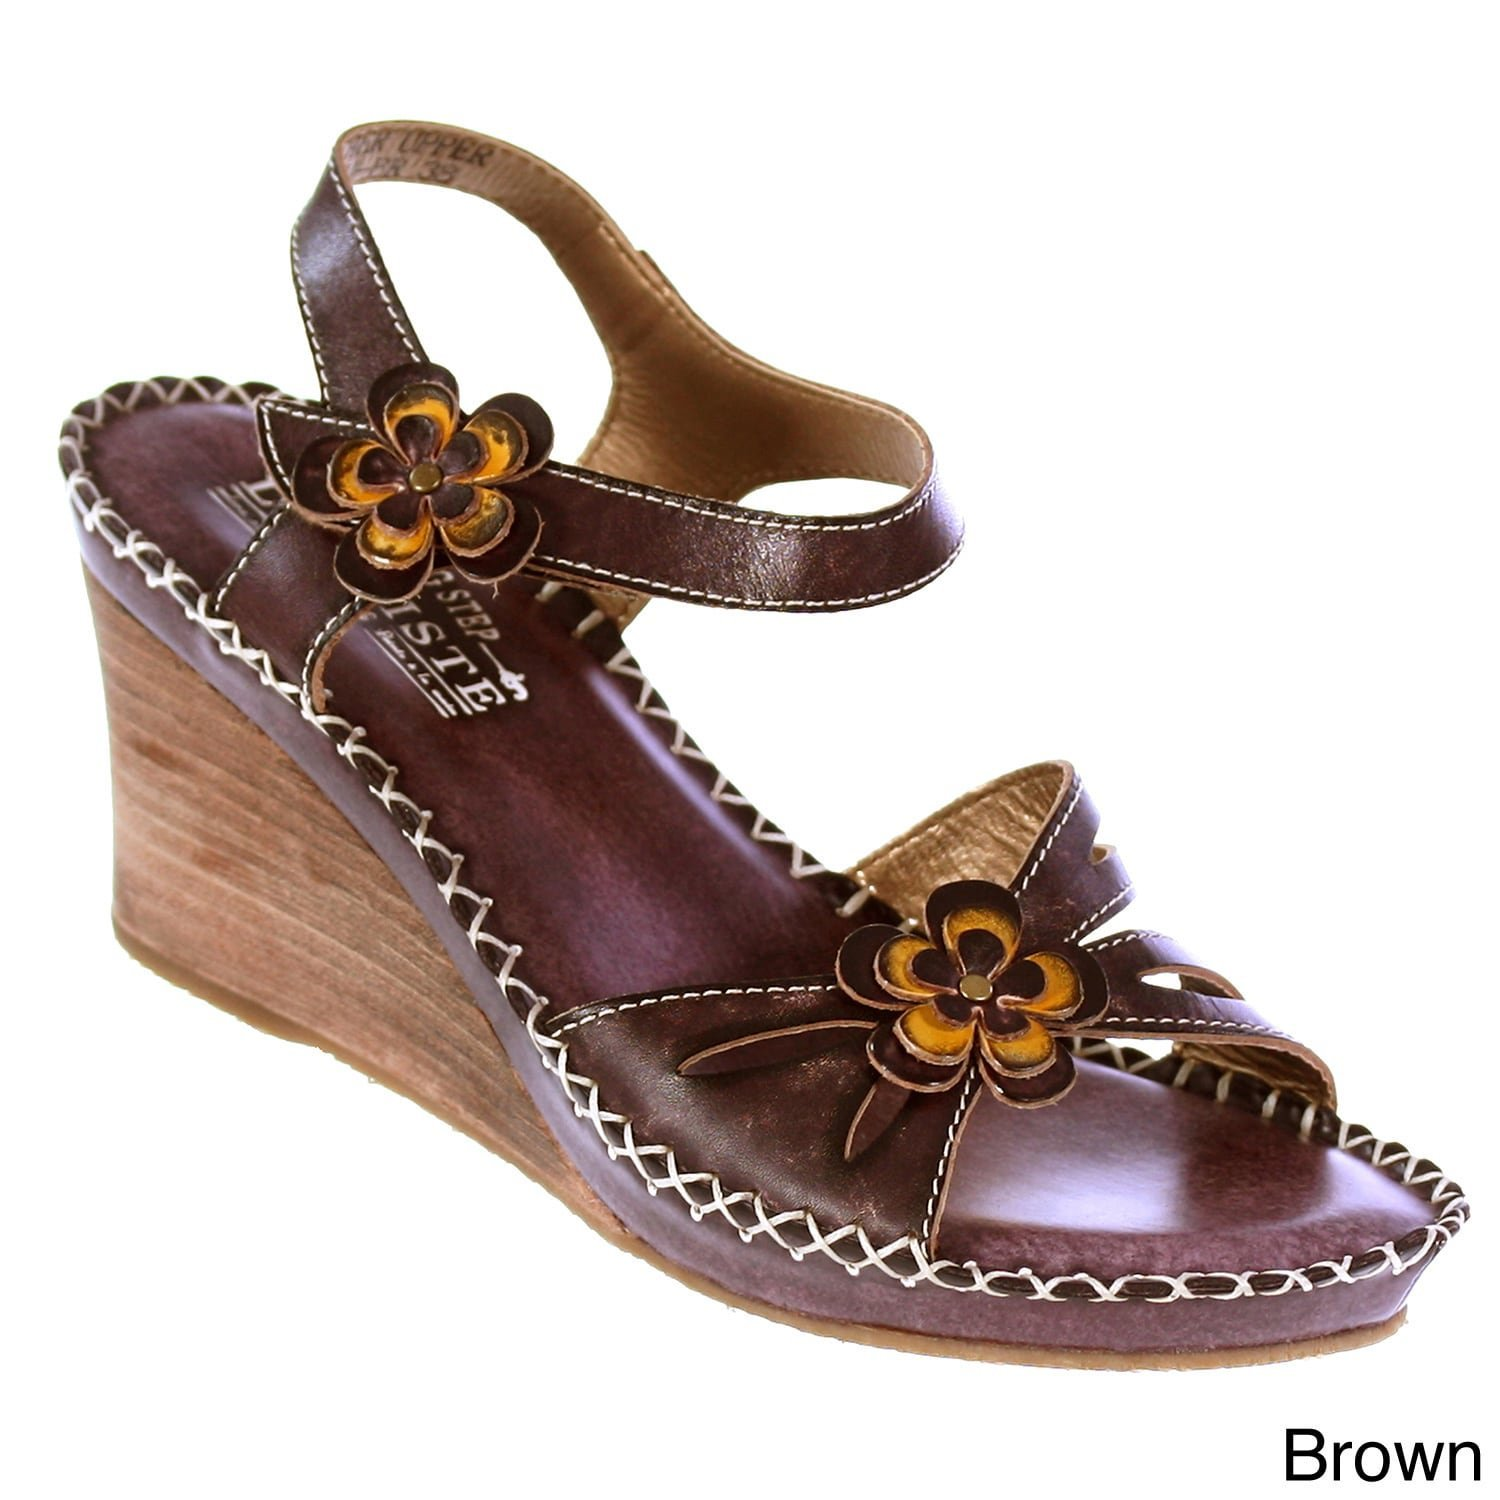 3fac9488cad Get Quotations · L ARTISTE Spring Step Women s Leather Floral-Trim Wedge  Sandals Brown 8